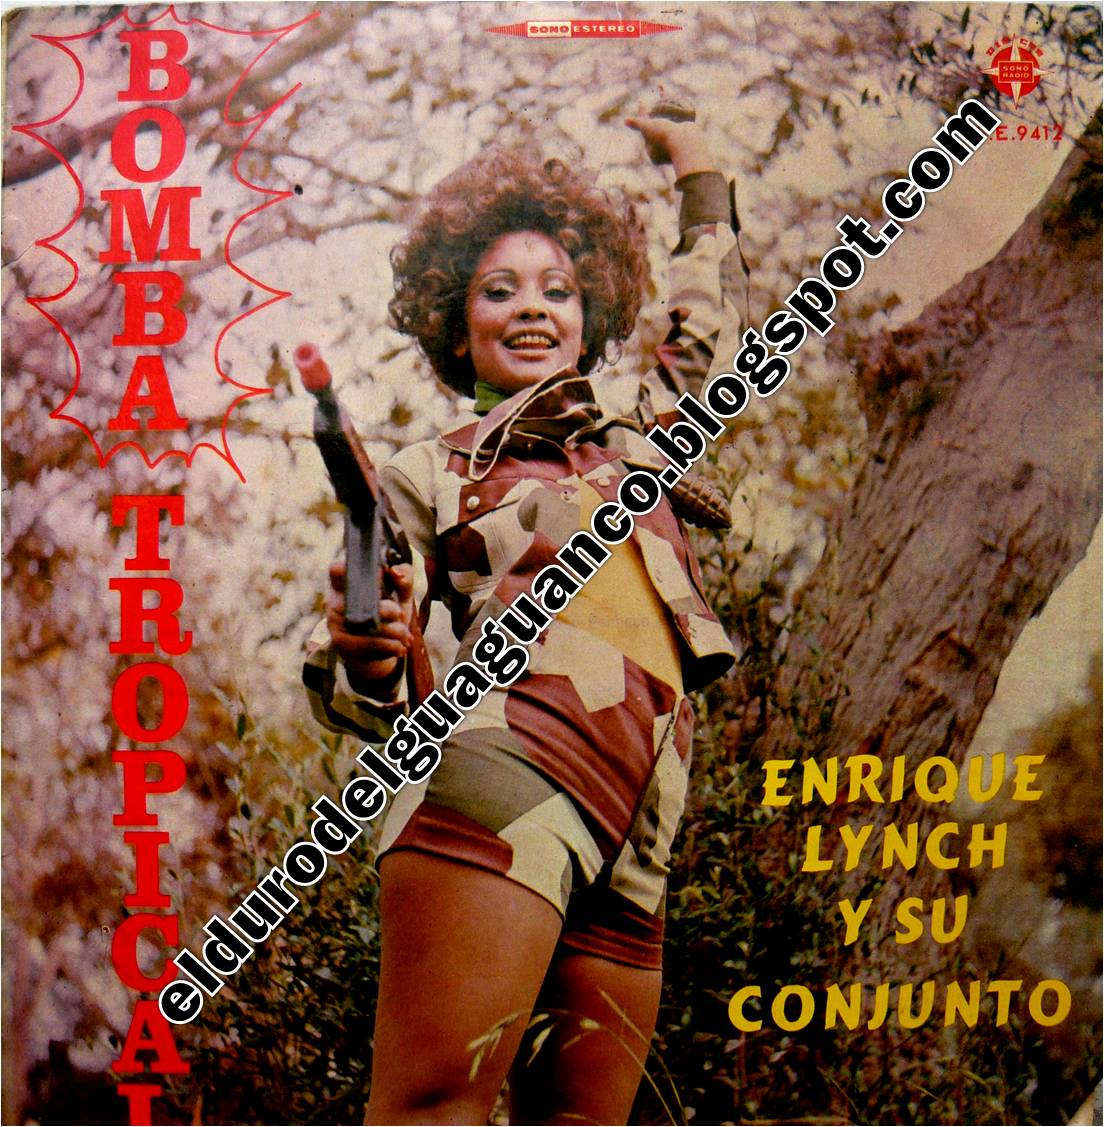 Enrique Lynch Y Su Conjunto Enrique Lynch Y Su Conjunto